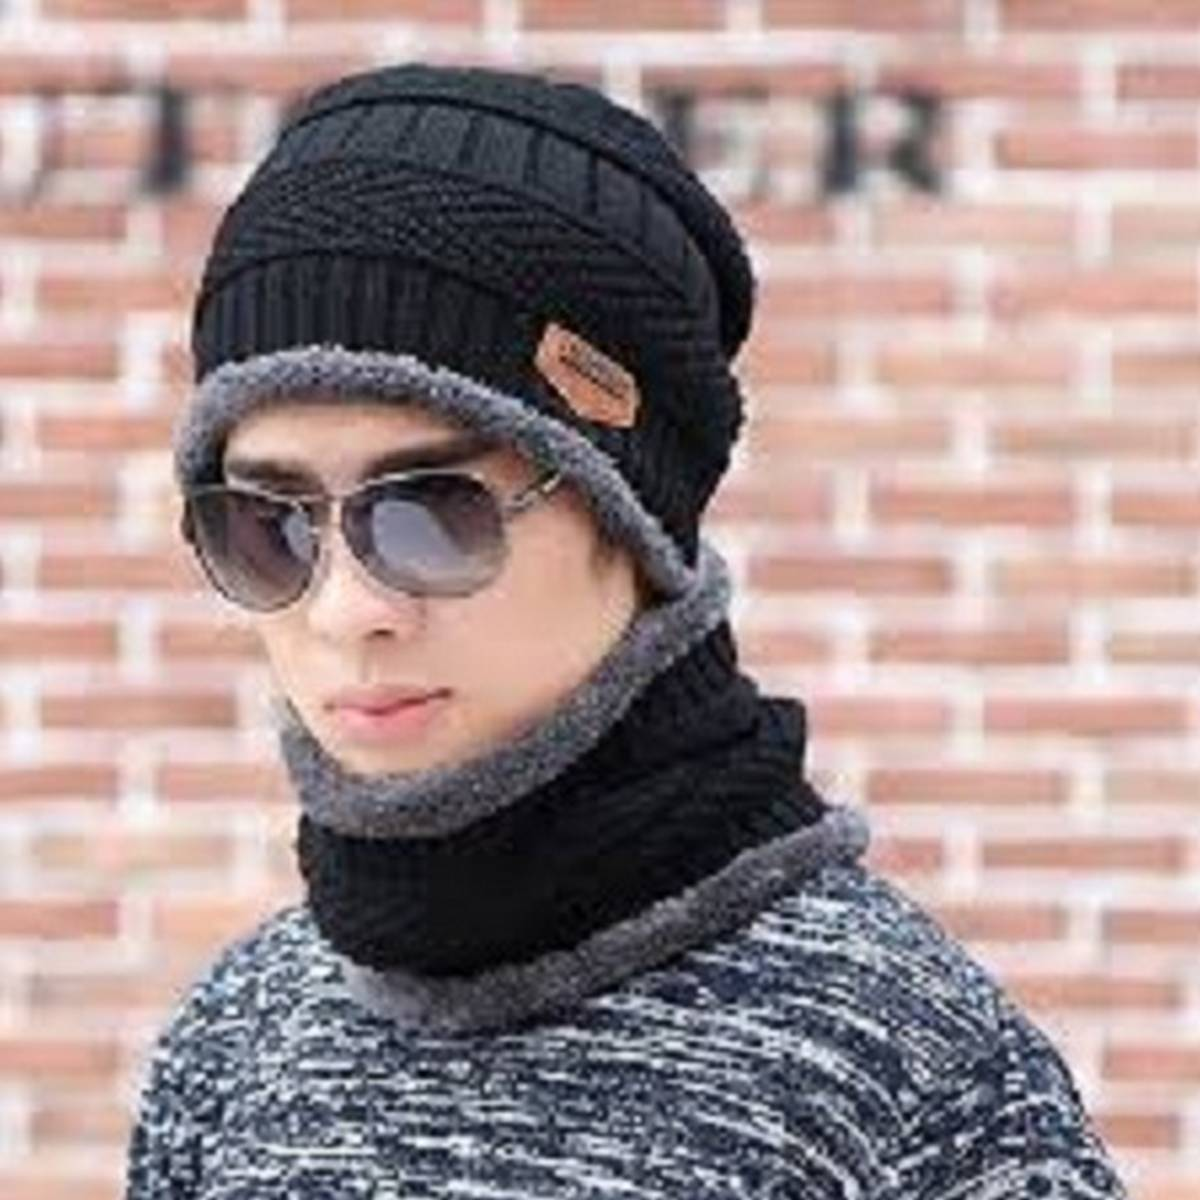 New Stylish Winter Hats, Ladies And Gents Hot Knitted caps and Neck Warmer Mask 2 in 1 Scarf Beanie for Kids, Boys & Girls Hat and Neck Warmer For Mens And Womens.